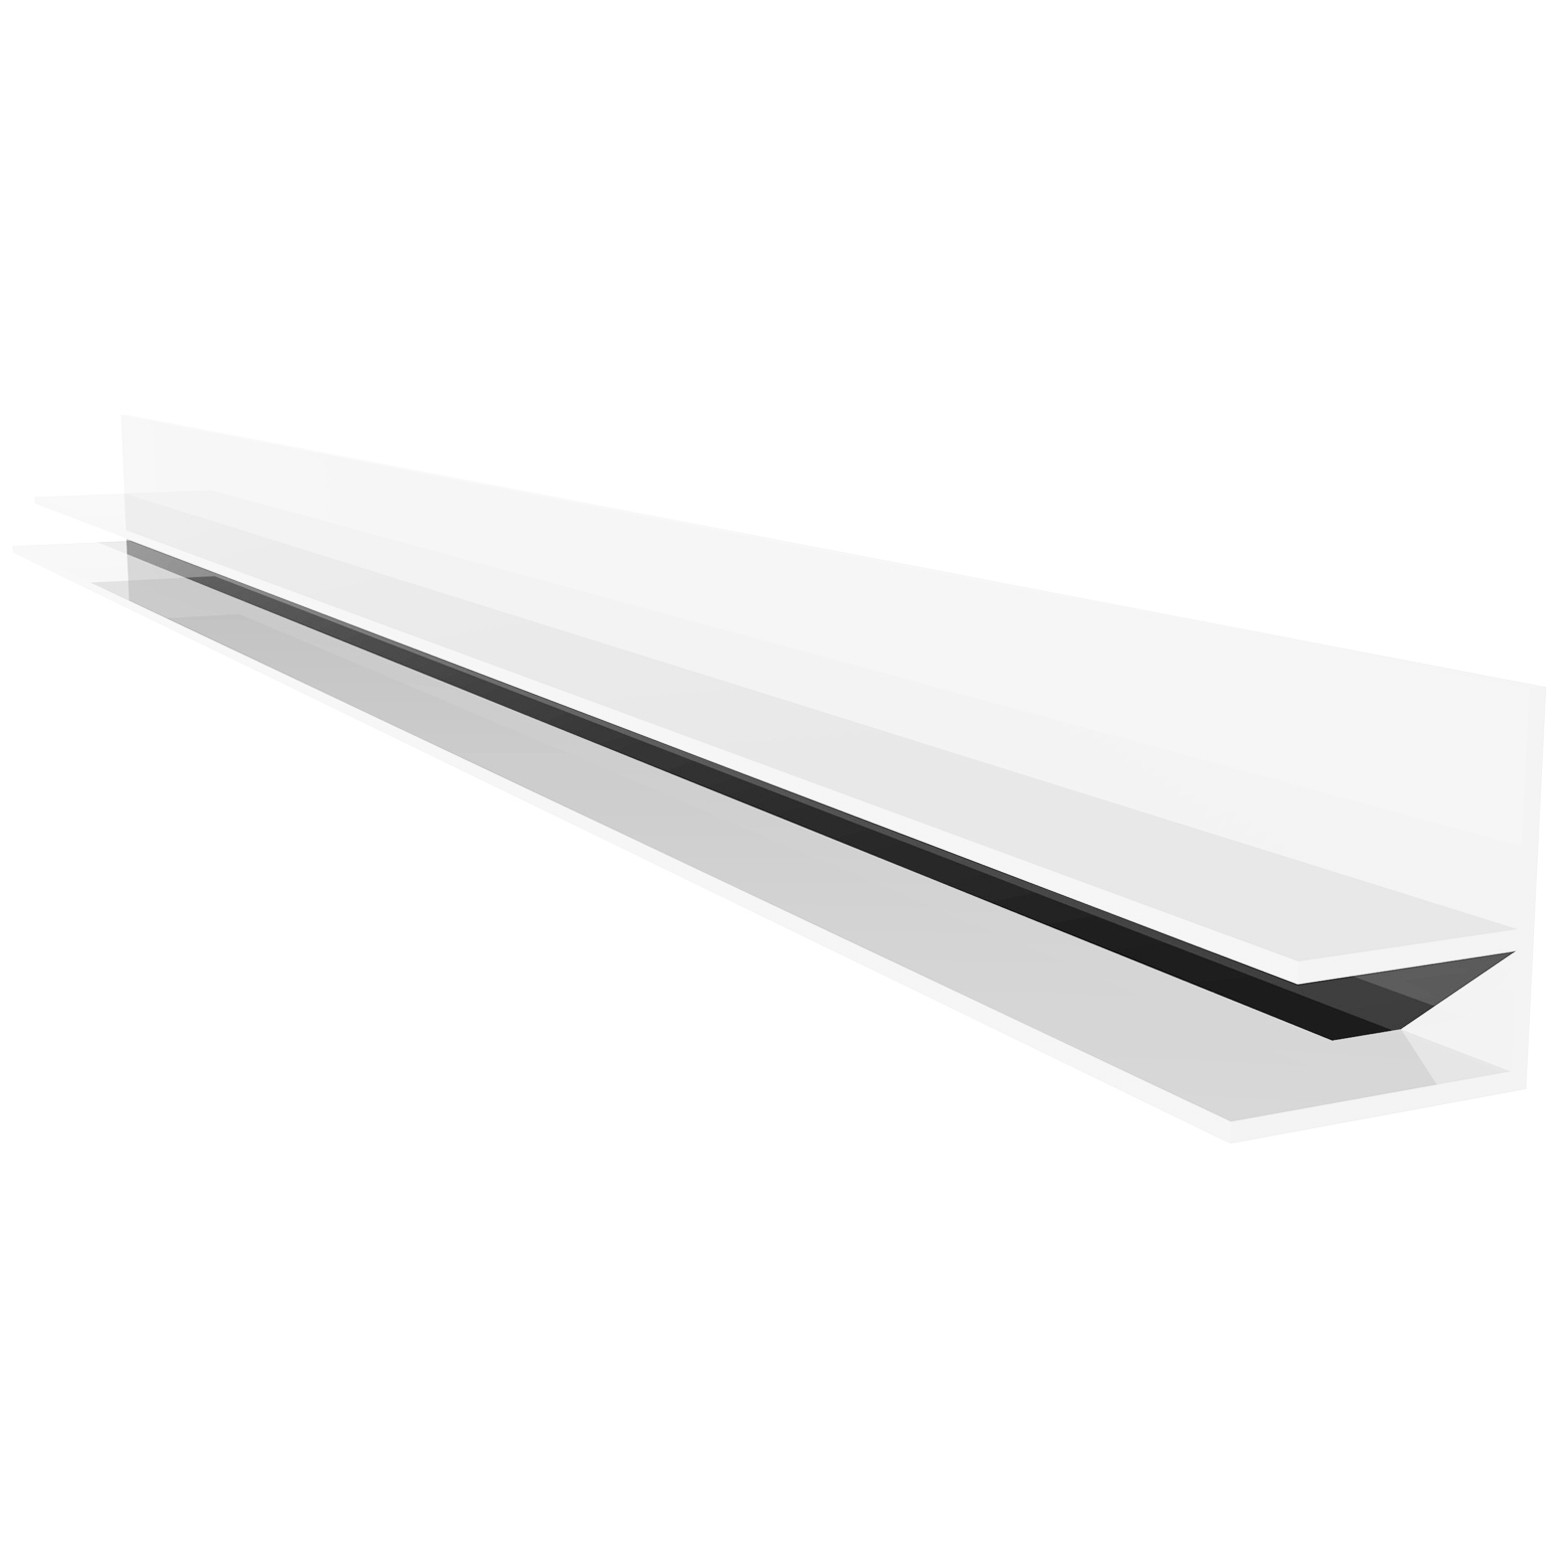 Freefoam Hollow Soffit F Wall Trim - White, 5 metre